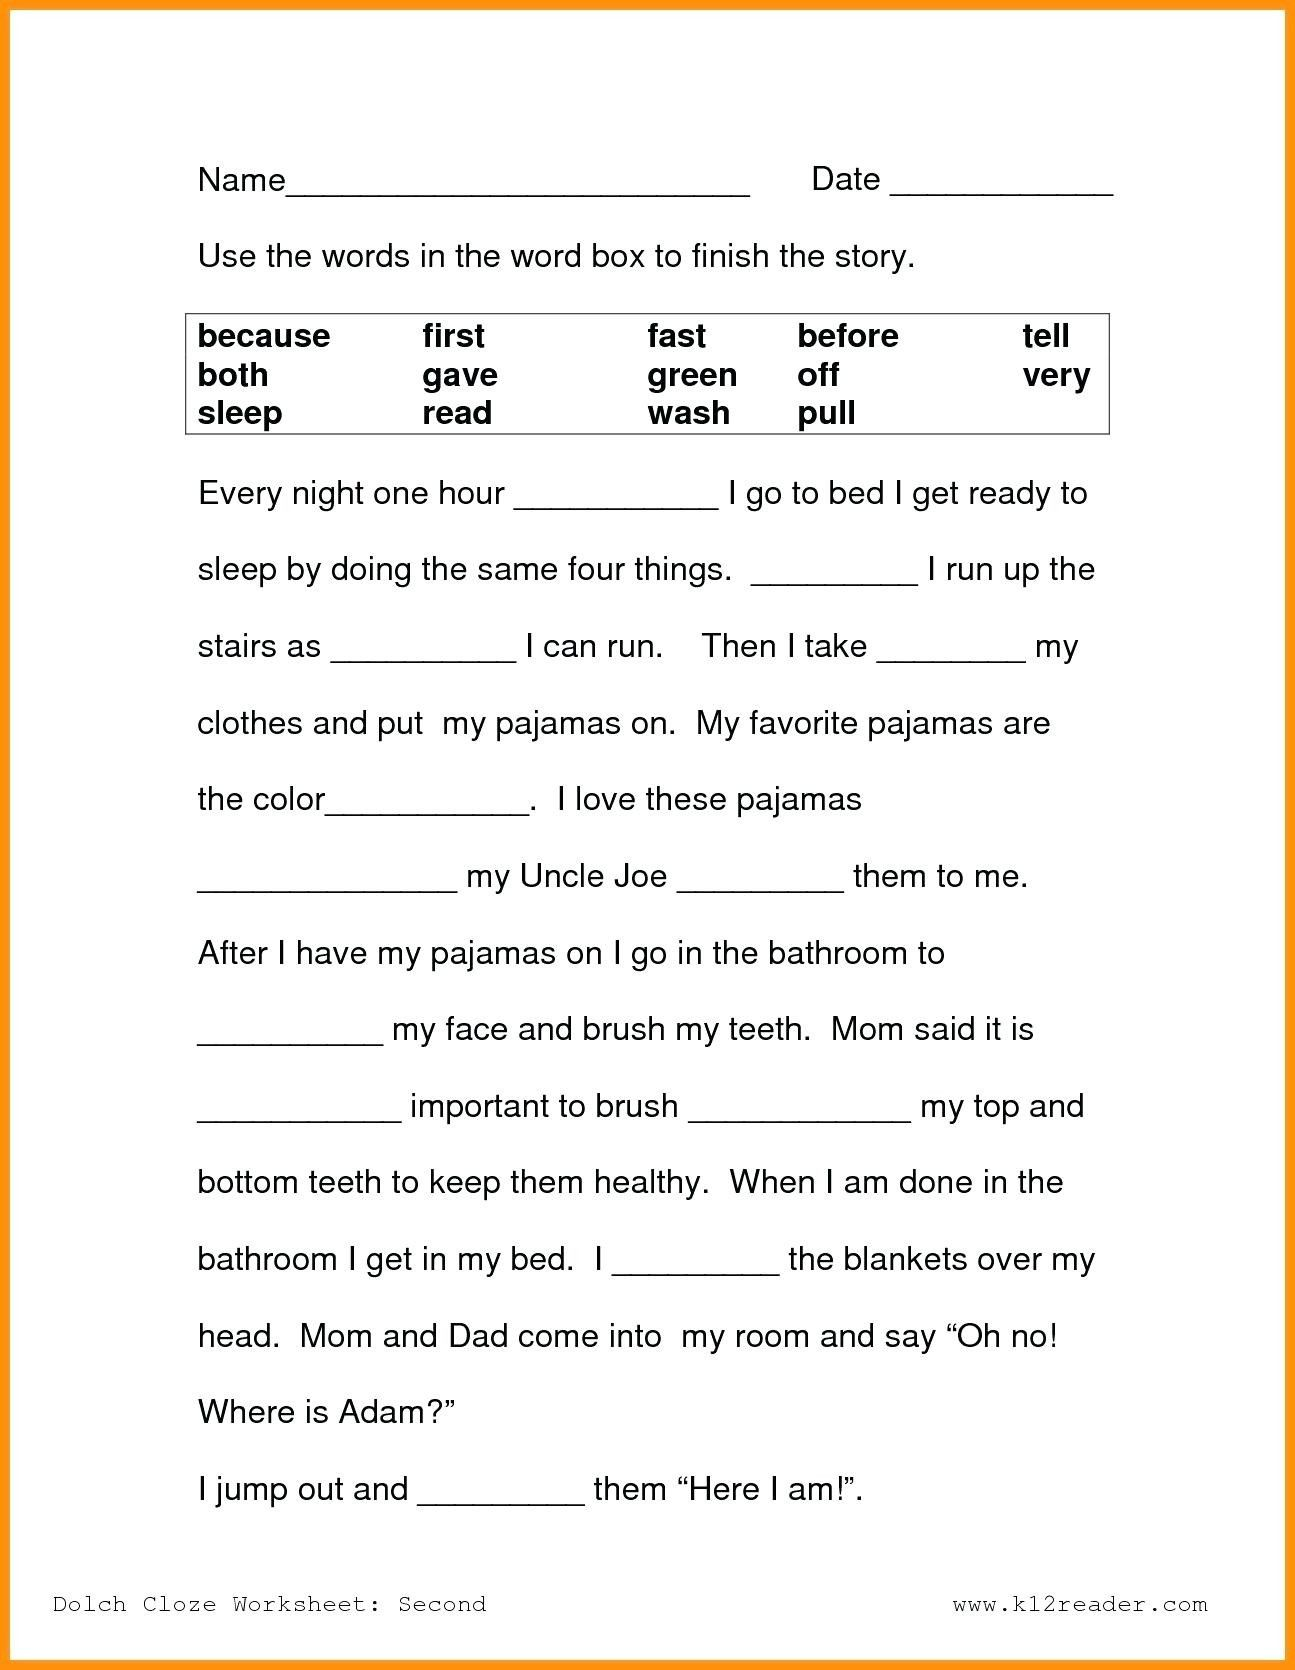 5 Evaluating Expressions Worksheet 6th Grade In